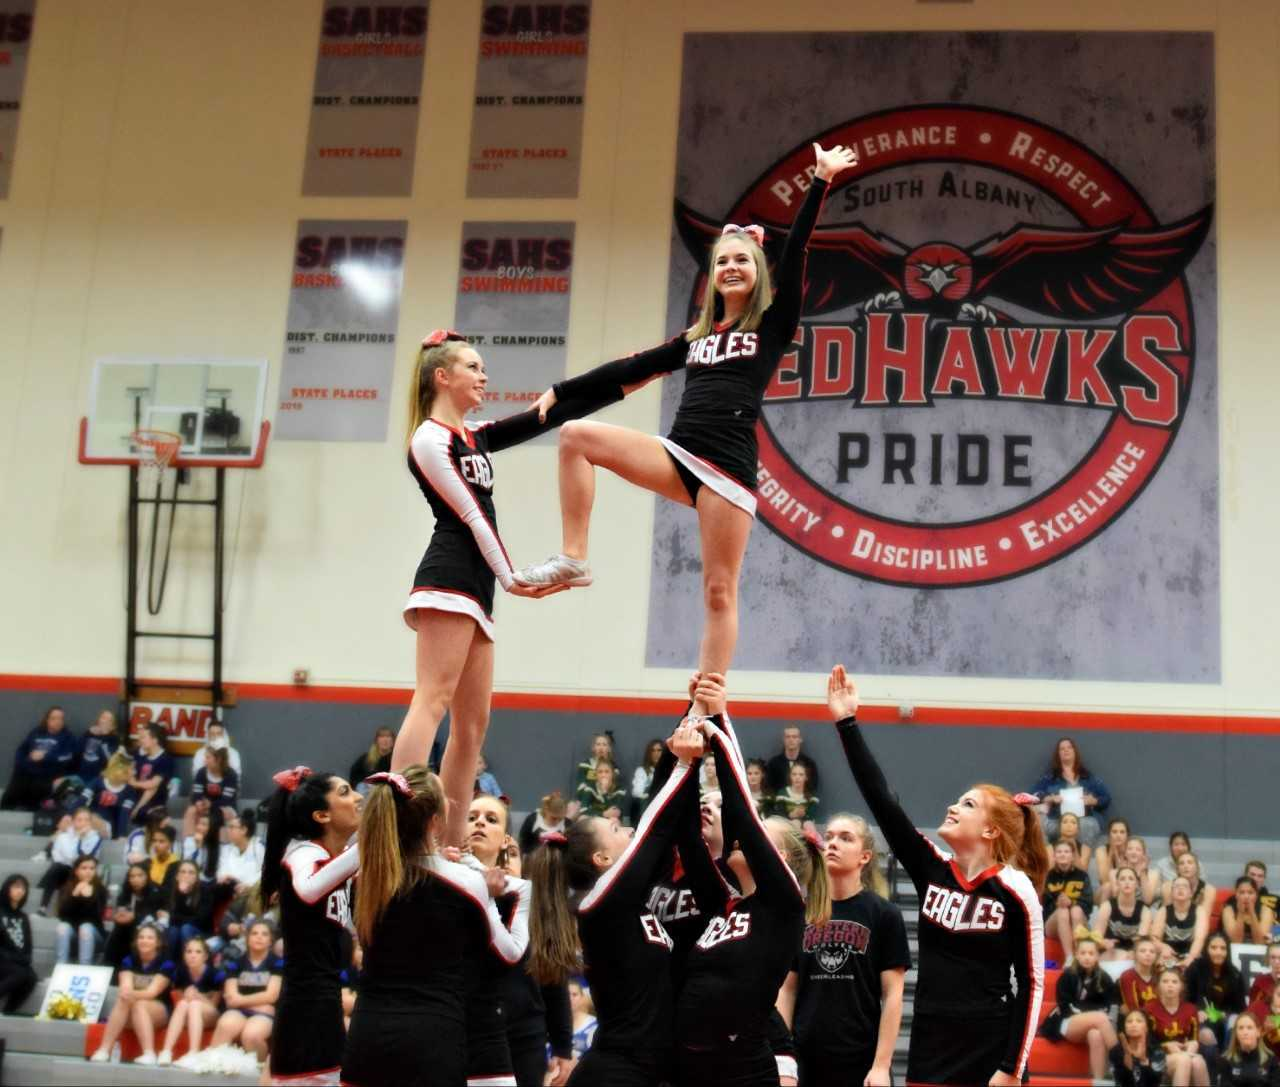 Santiam Christian looked impressive in its victory over 2018 state champion Central Linn in the 1-3A division.